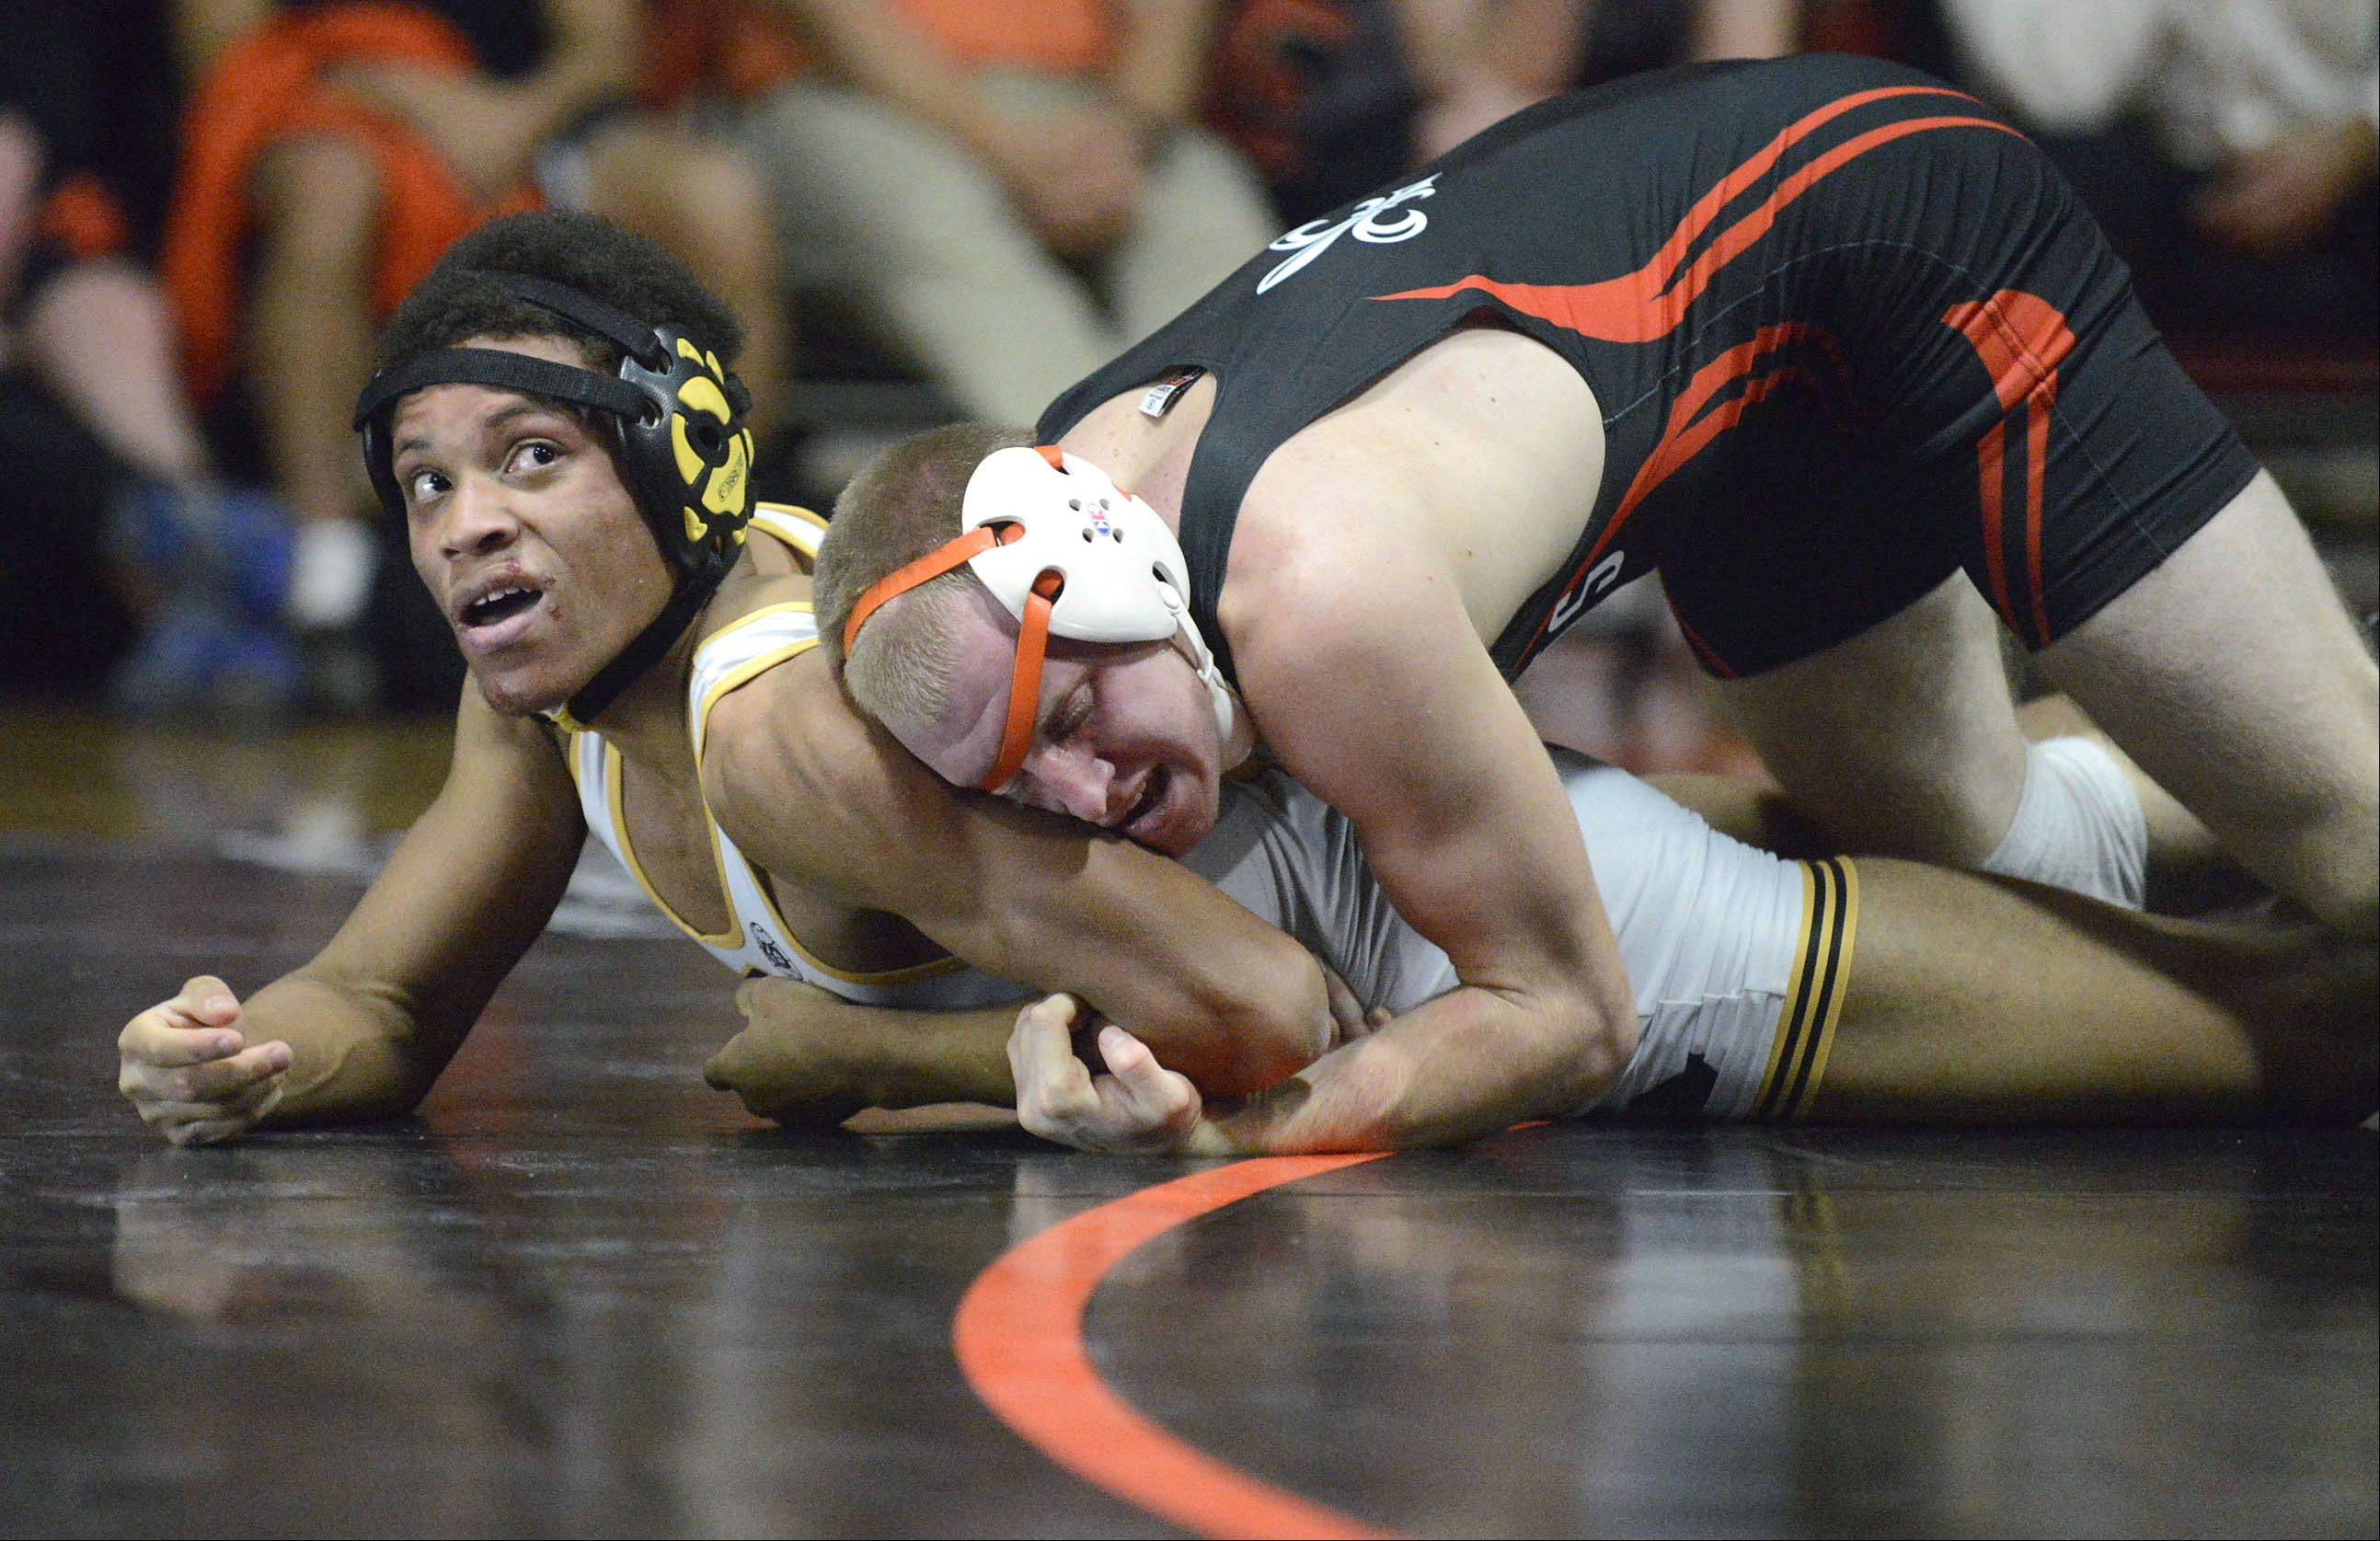 St. Charles East's Jake Mende takes the 145 pound match vs. Metea Valley's D.J. Materino on Thursday, December 19.